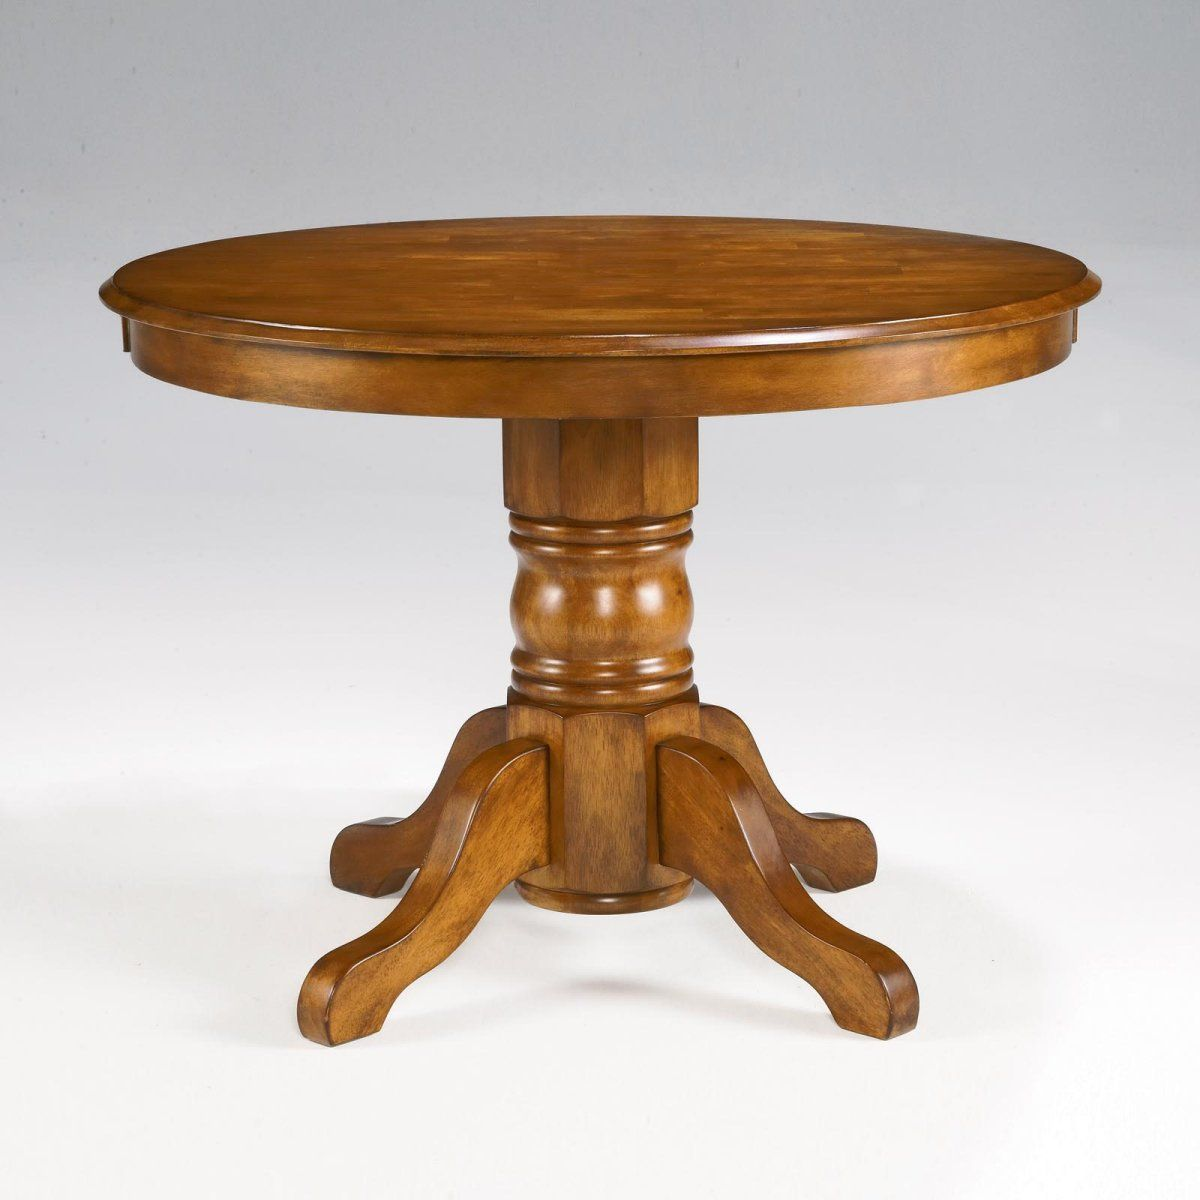 Black Friday 2014 Home Styles Round Dining Table With Pedestal Base Cottage Oak Finish From Homestyles Cyber Monday